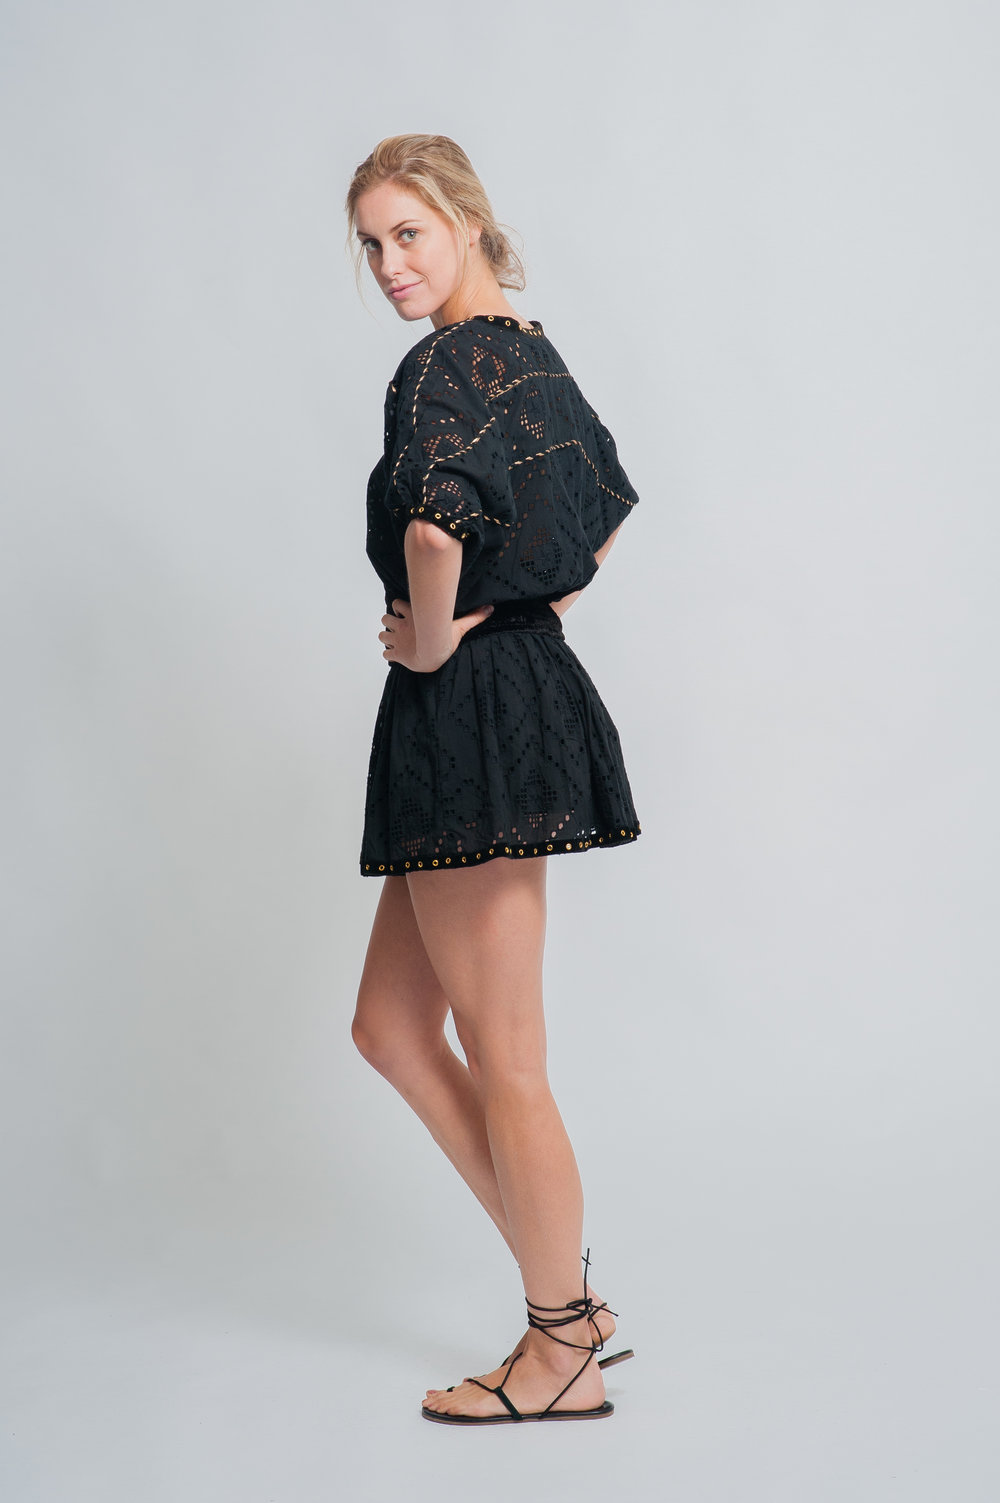 SS19-35 L'ESCALET CUTWORK LACE BALLOON SLEEVE CROP BLOUSE worn with  SS19-17 LE PORTISSOL CUTWORK LACE MINI SKIRT